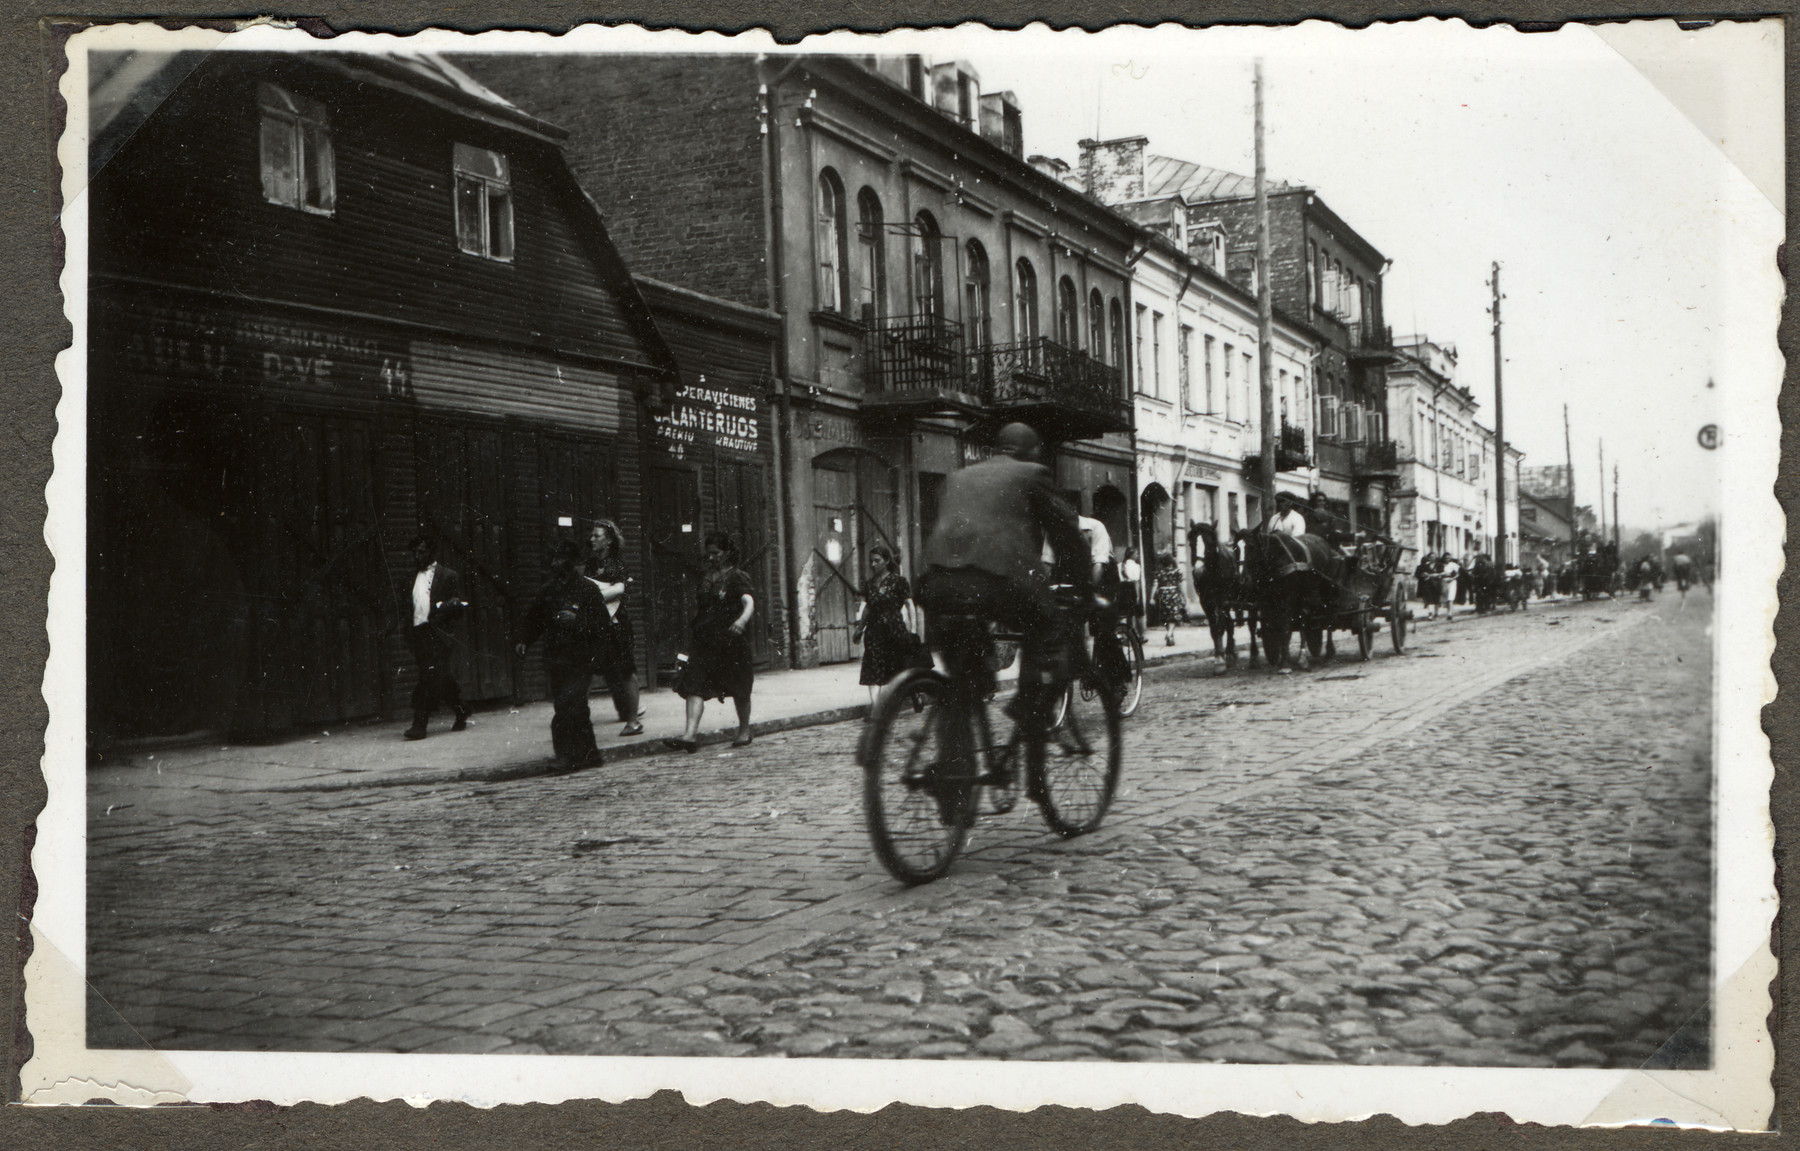 A Lithuanian man rides his bicycle down a street in Kaunas while in the other direction Jews move their belongings on carts and wagons to the new ghetto located across the river in Slobodka.